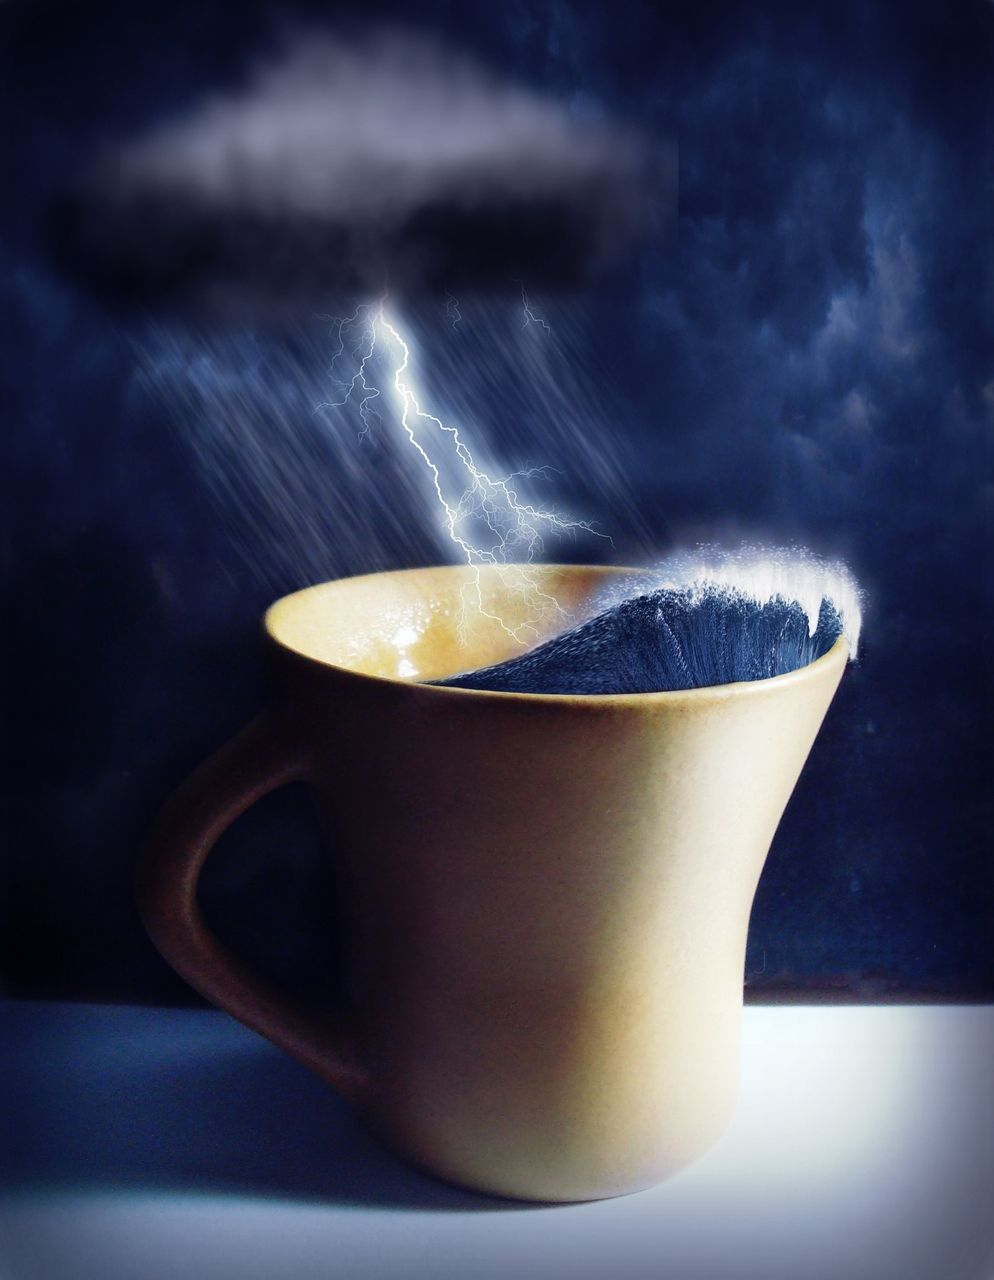 Storm In Cup - OGQ Backgrounds HD